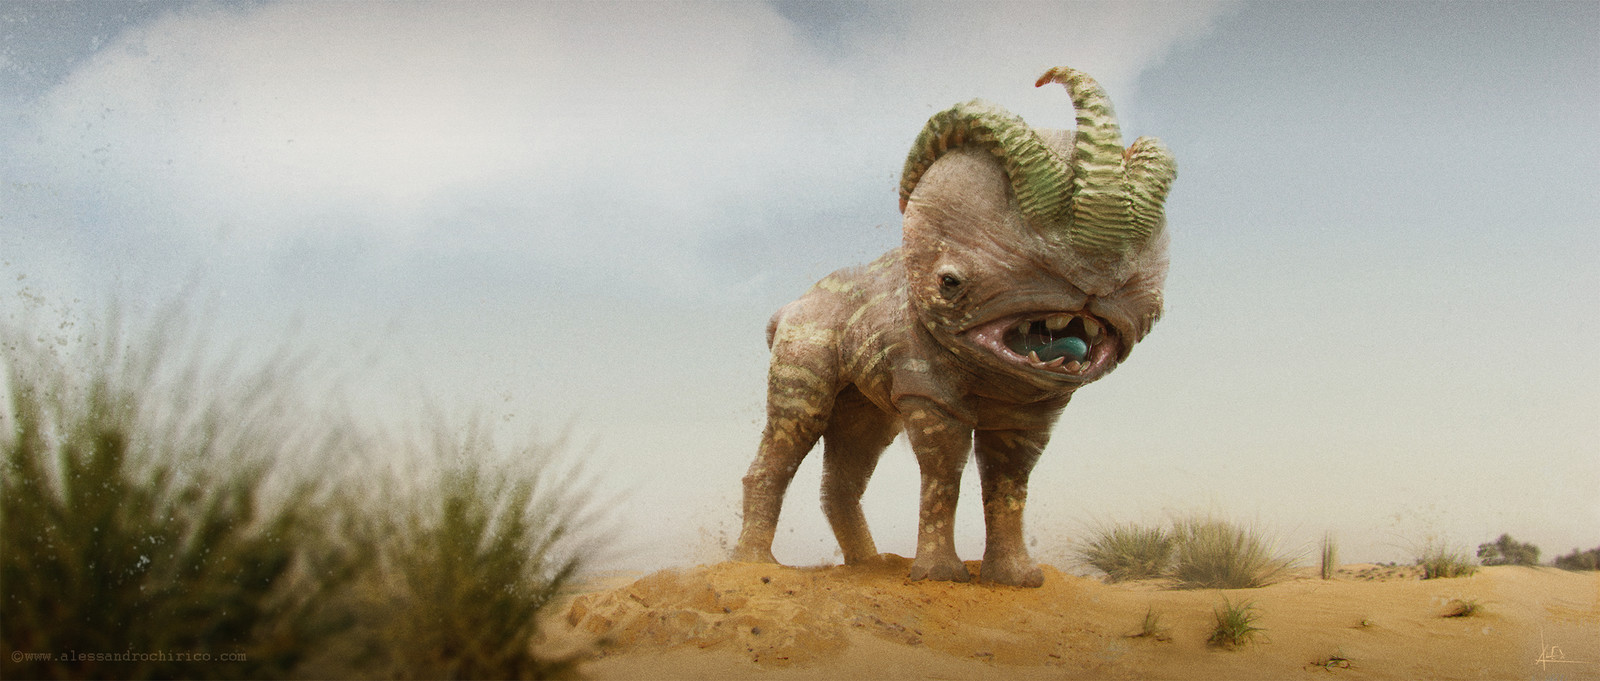 Sand Creature - The Ballooh